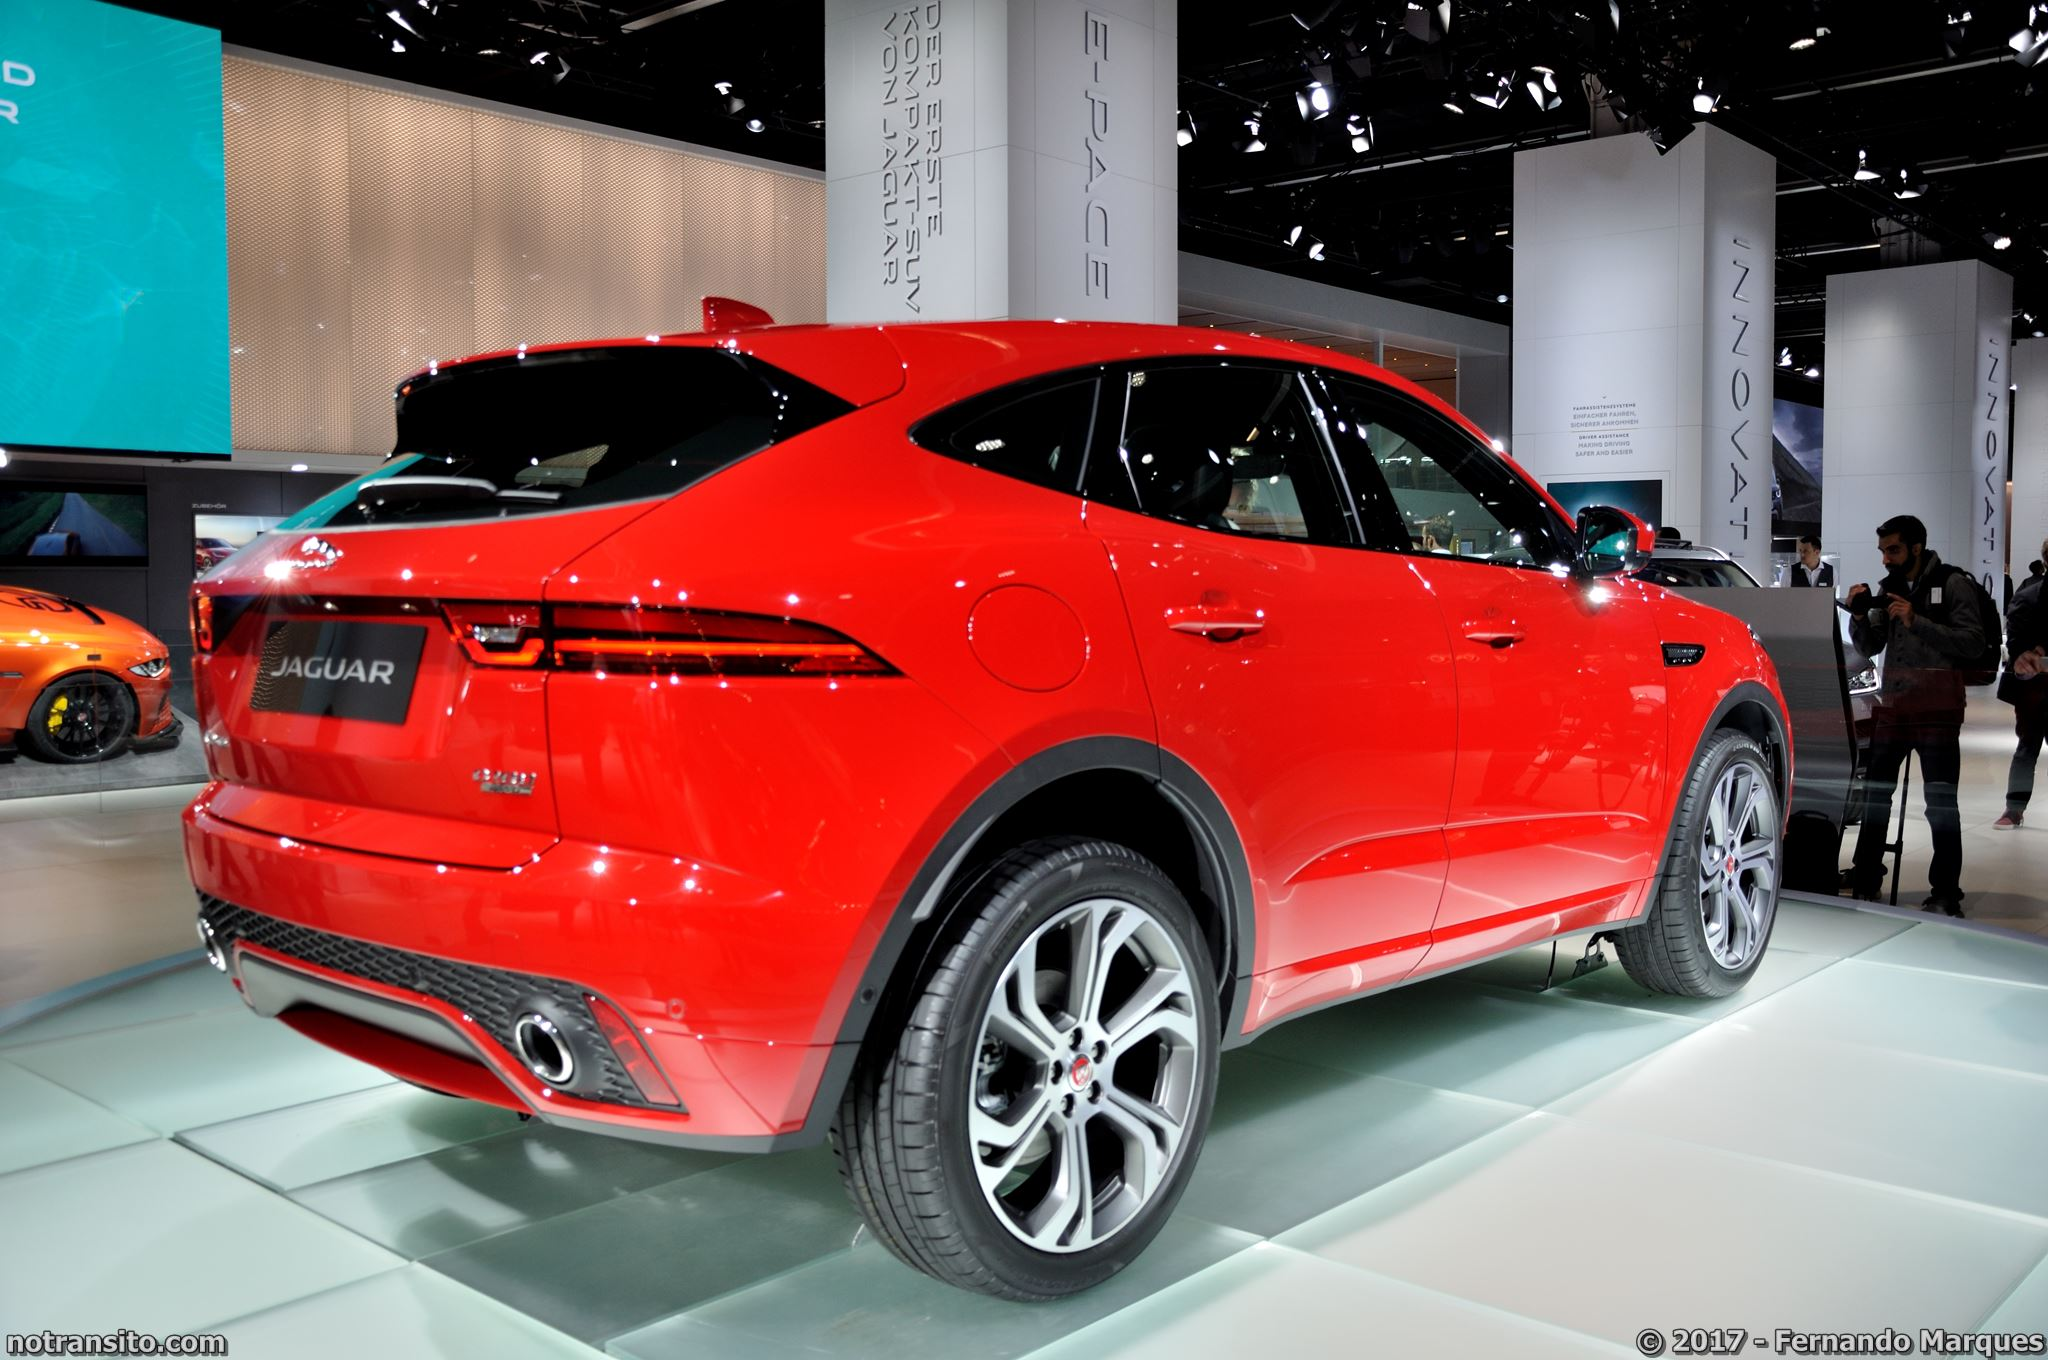 Jaguar-E-Pace-First-Edition-Frankfurt-2017-004